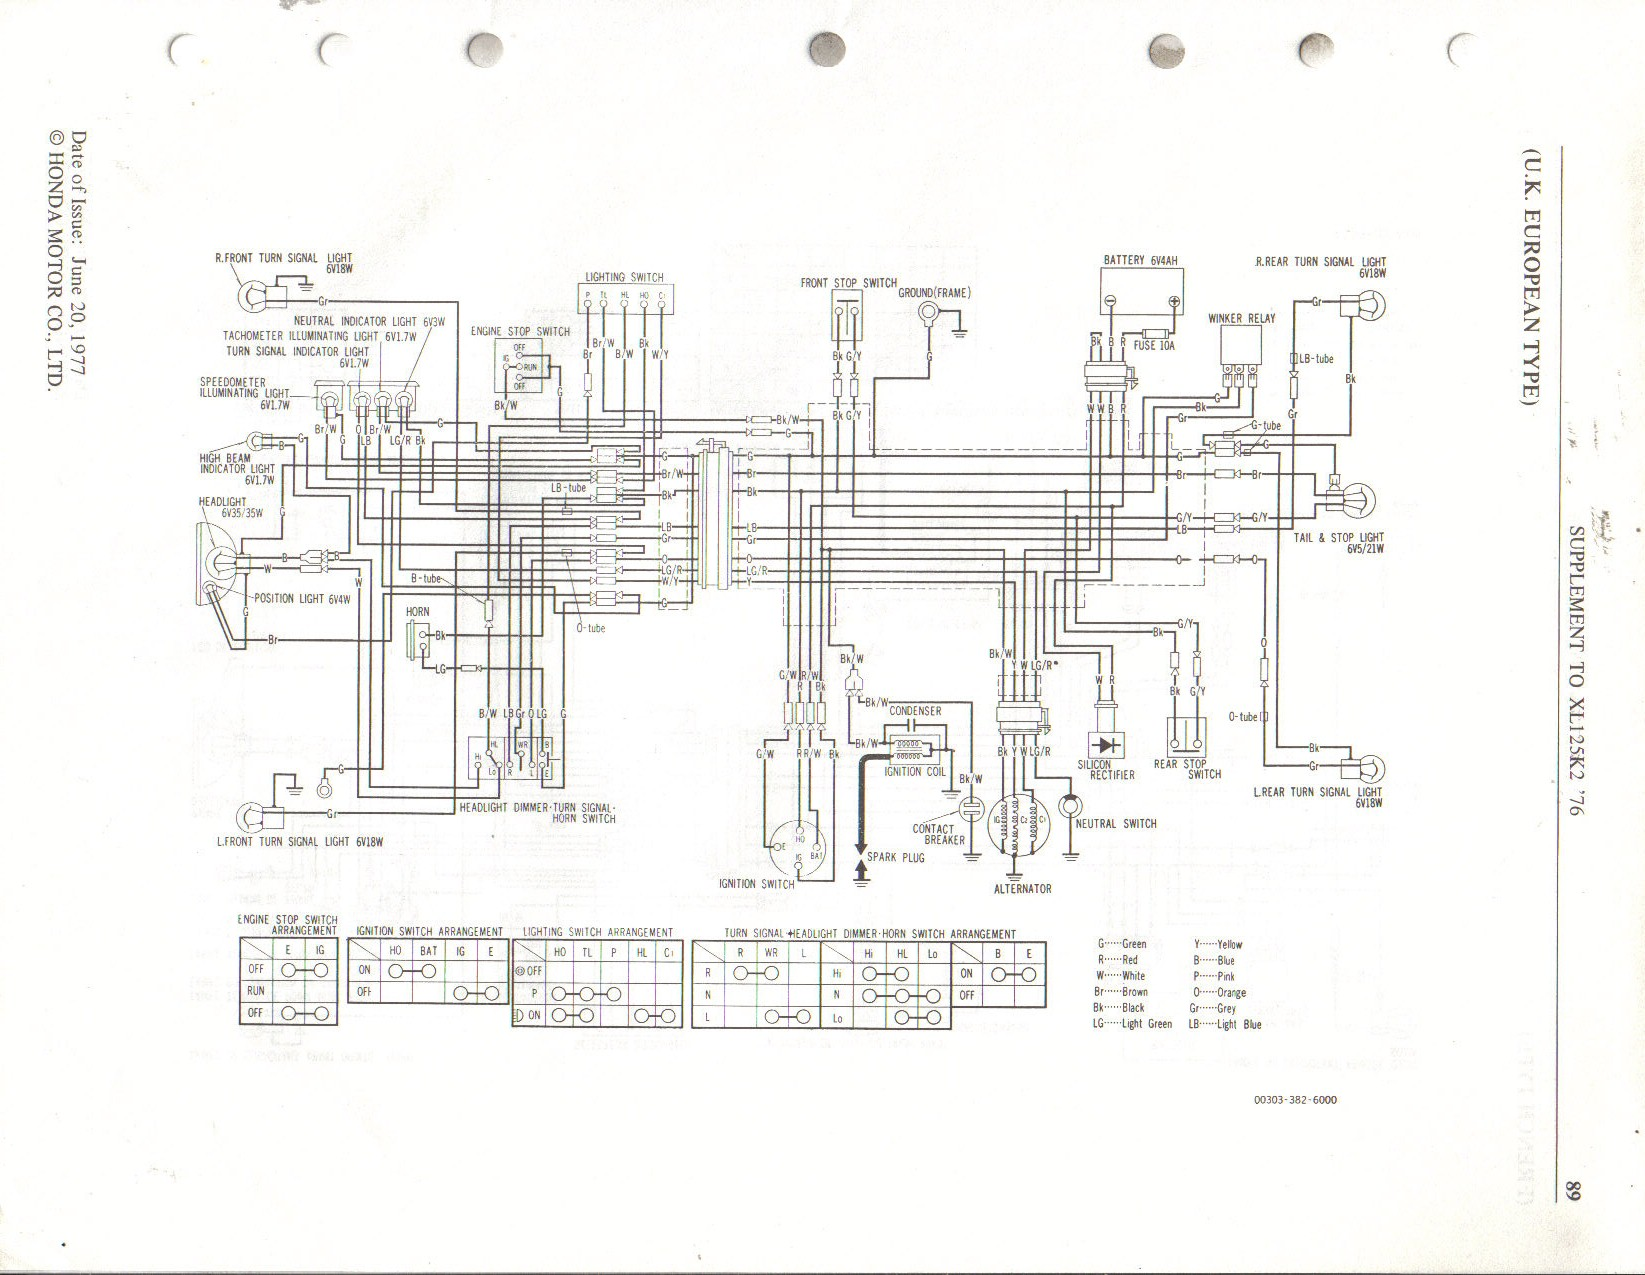 Xl125k2 76 Euro Wiring Diagram